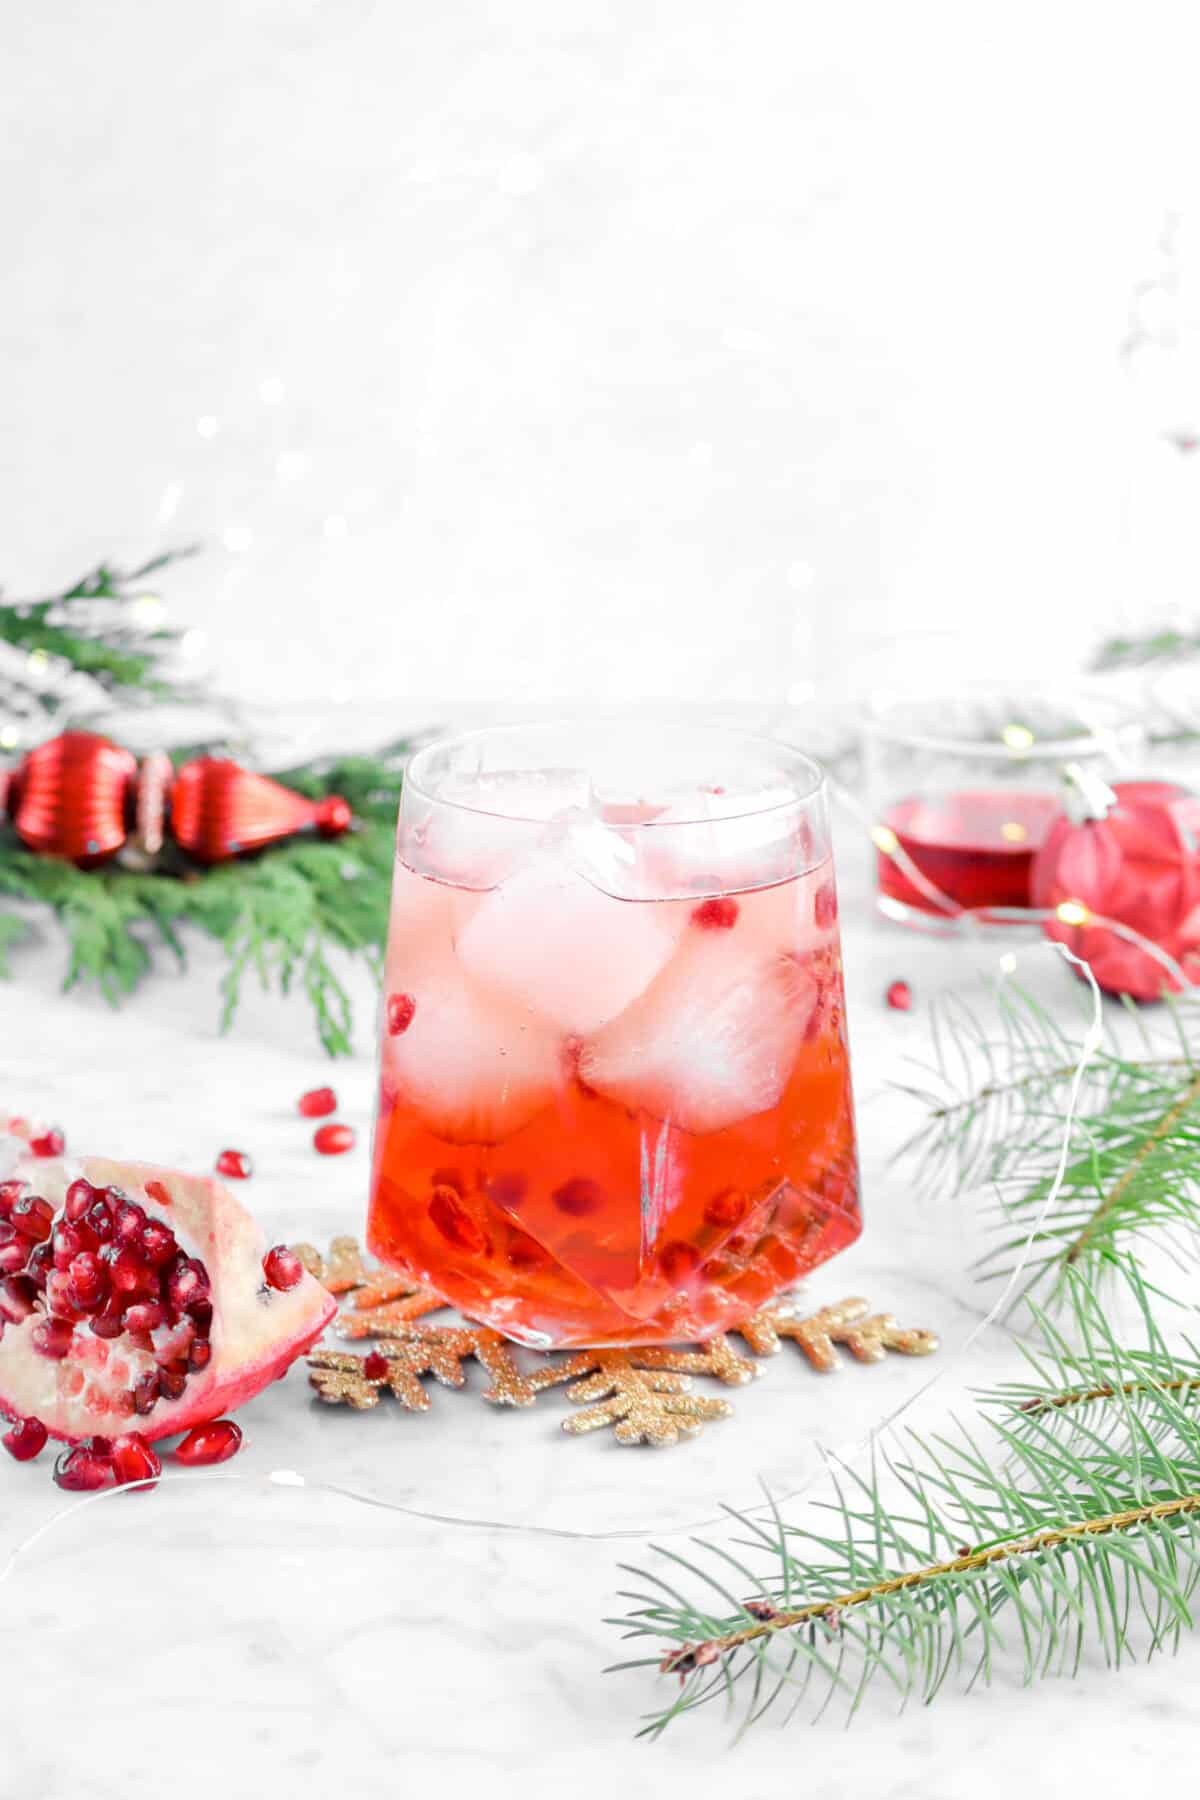 Pomegranate moscow mule on gold snowflake with red ornaments, greenery, and lights